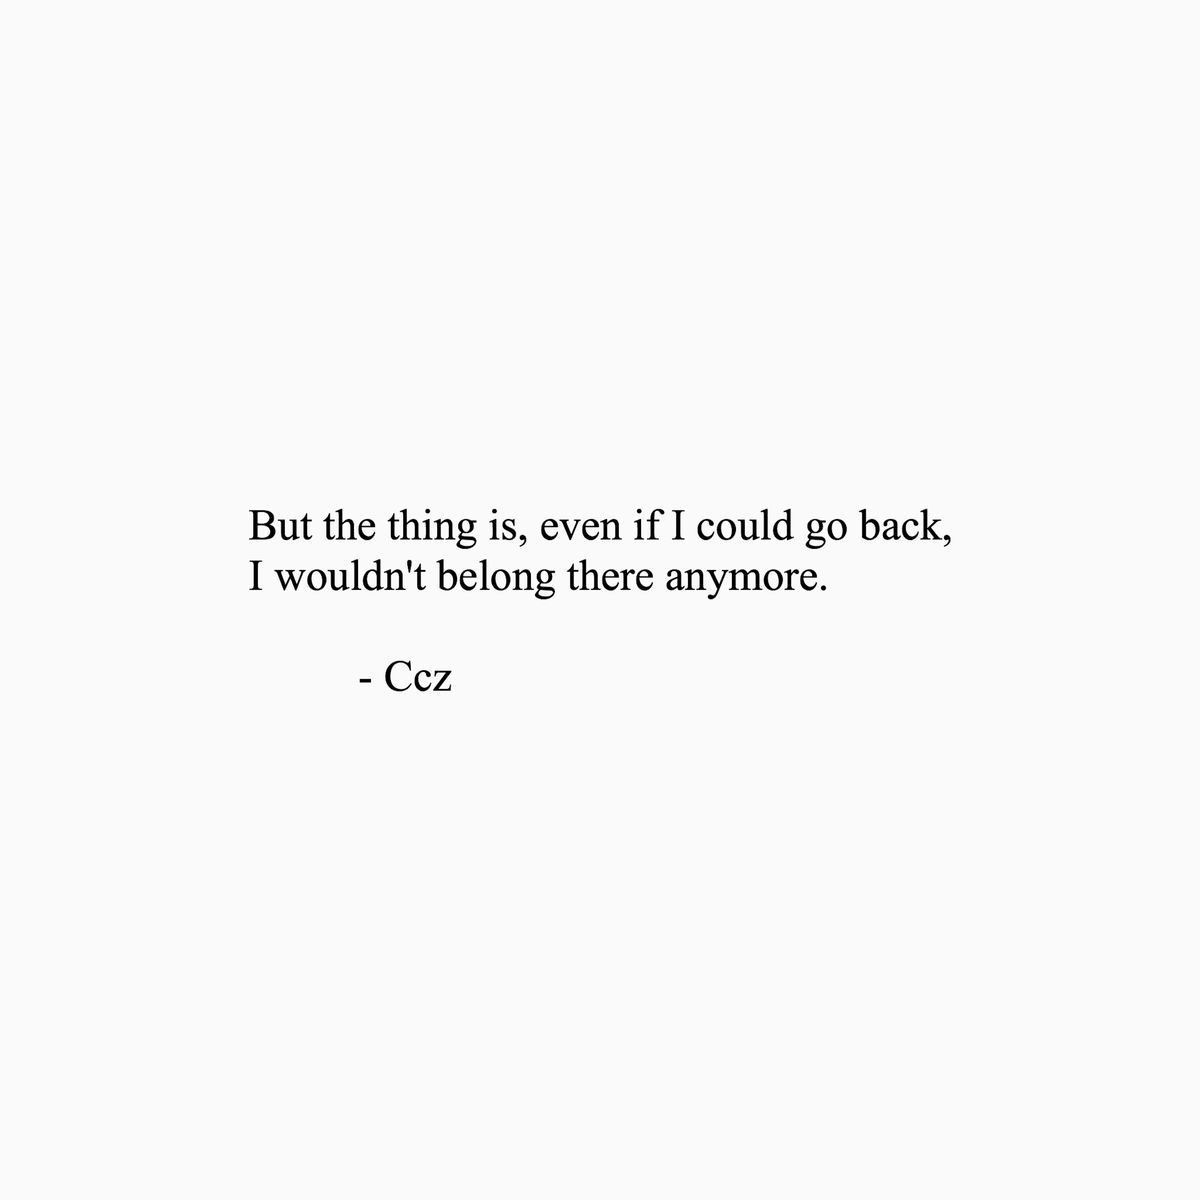 THIS: Even if I could go back, I wouldn't belong there anymore. #motivationalquotes #truth #wordstoliveby #quotestoliveby